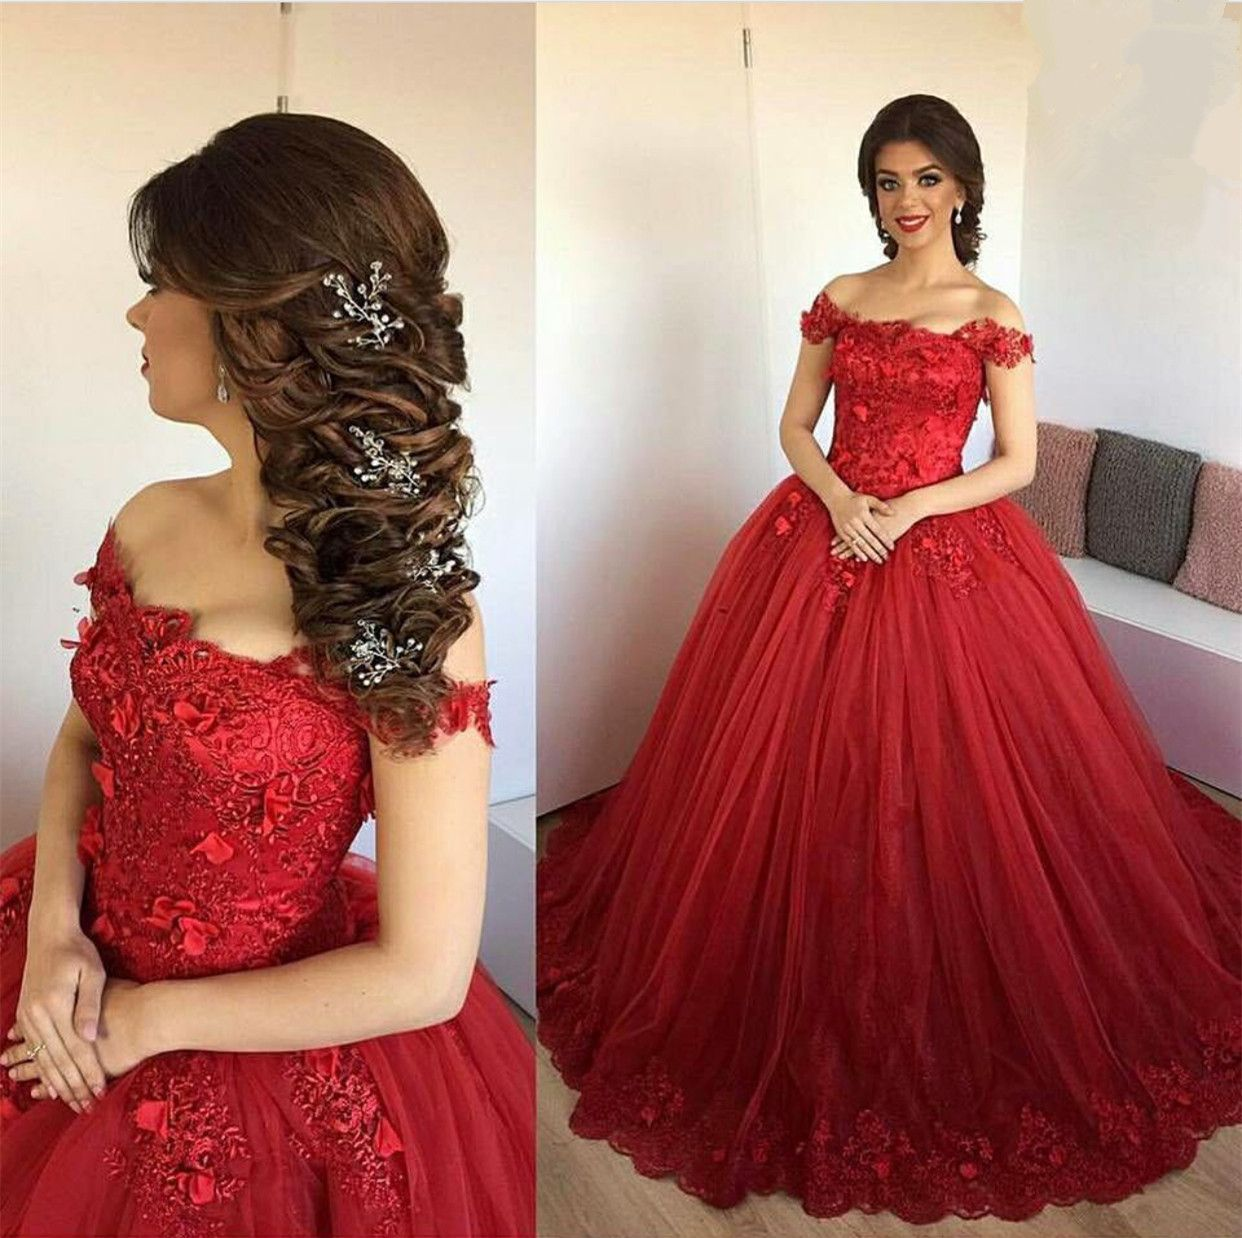 Lace Embroidery Sweetheart Tulle Ball Gowns Prom Dresses 2017 Elegant Engagement